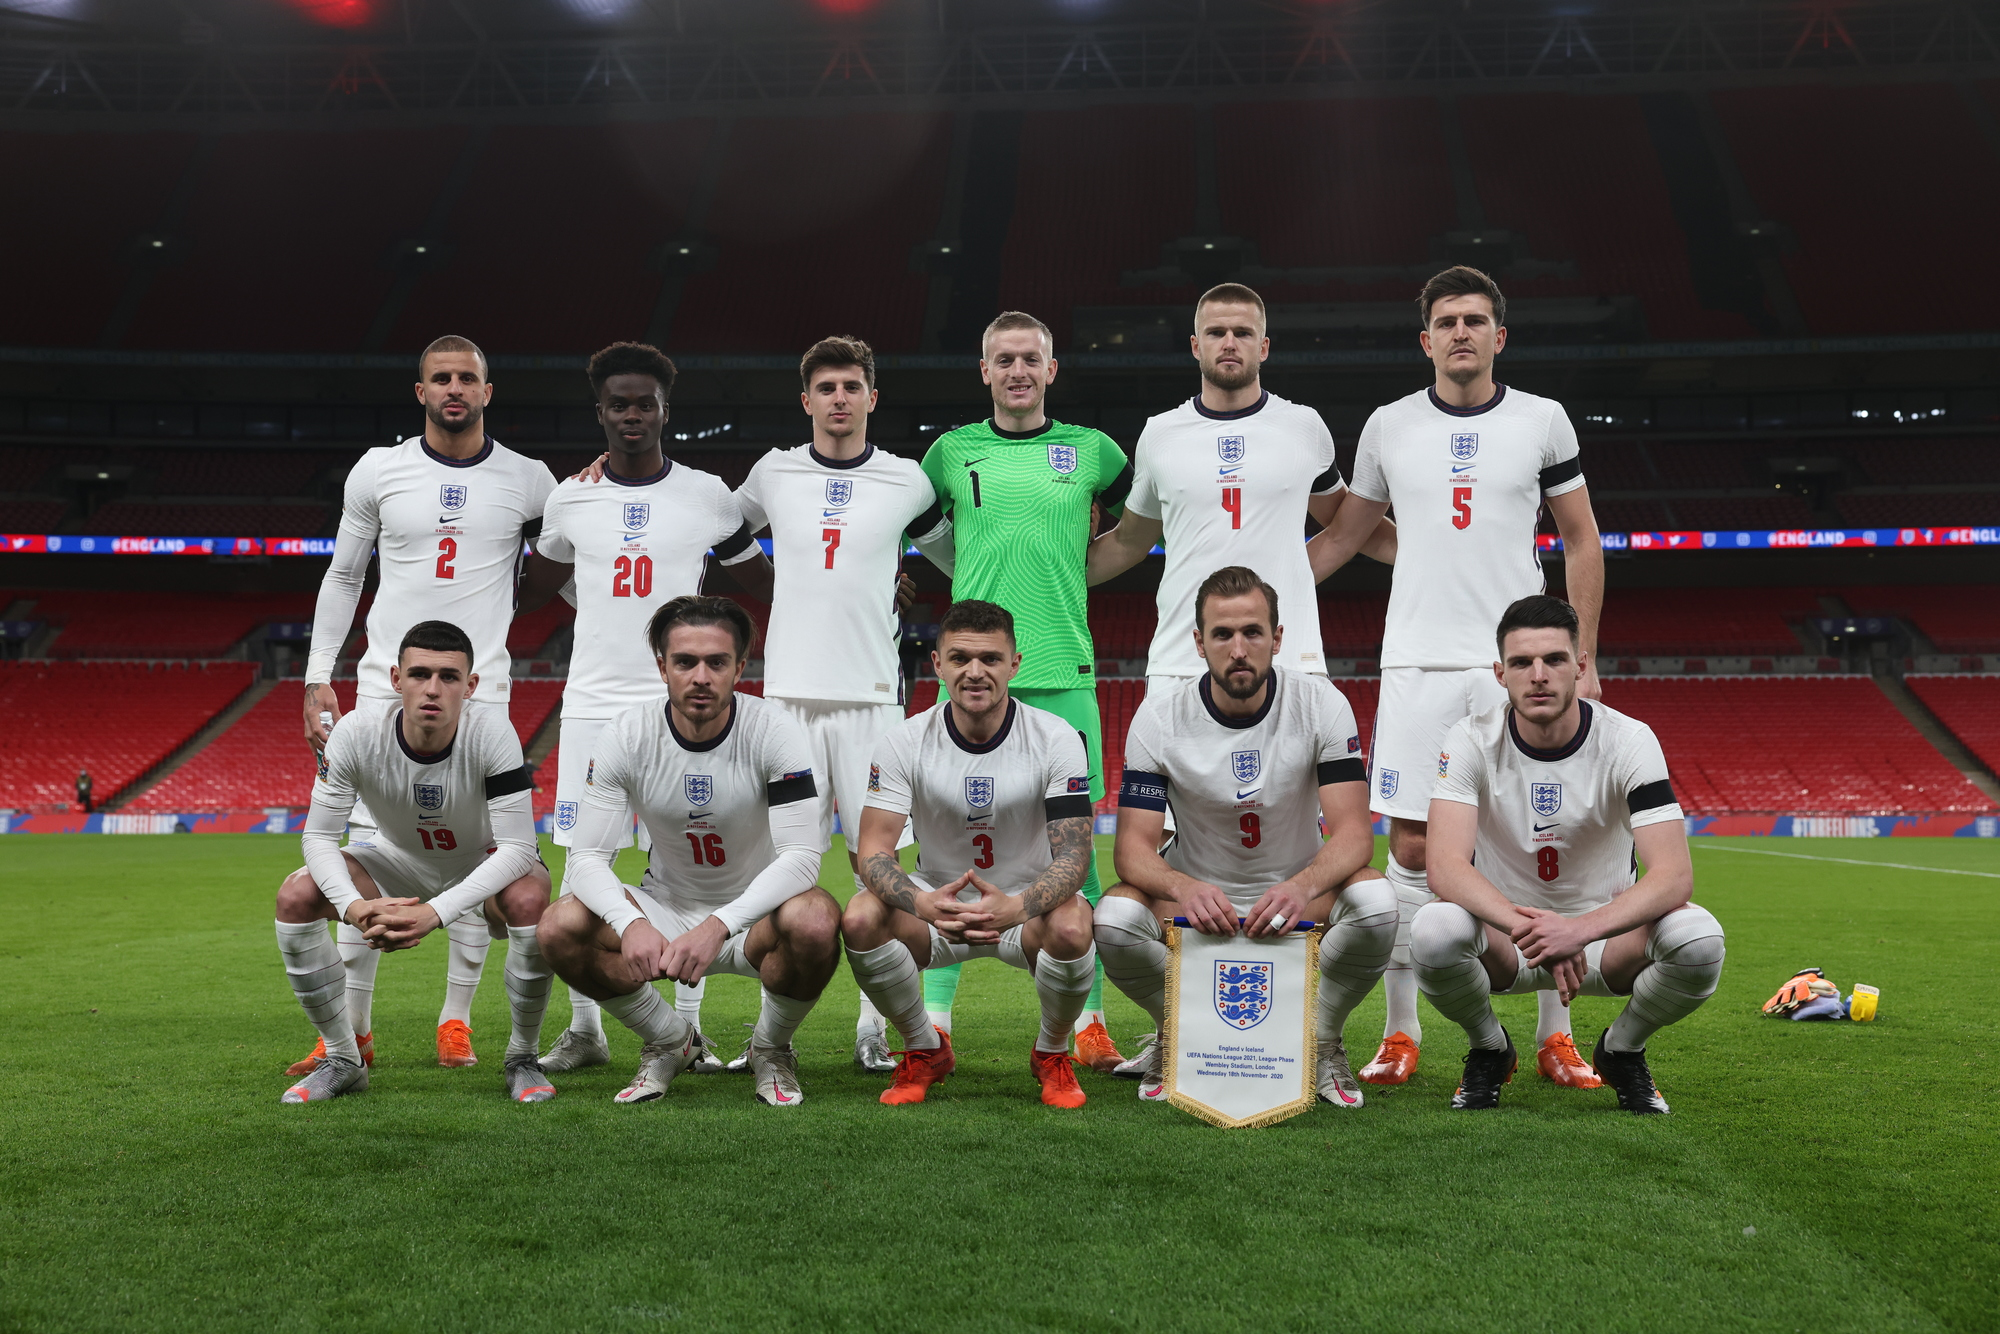 England line up ahead of the game against Iceland at Wembley Stadium